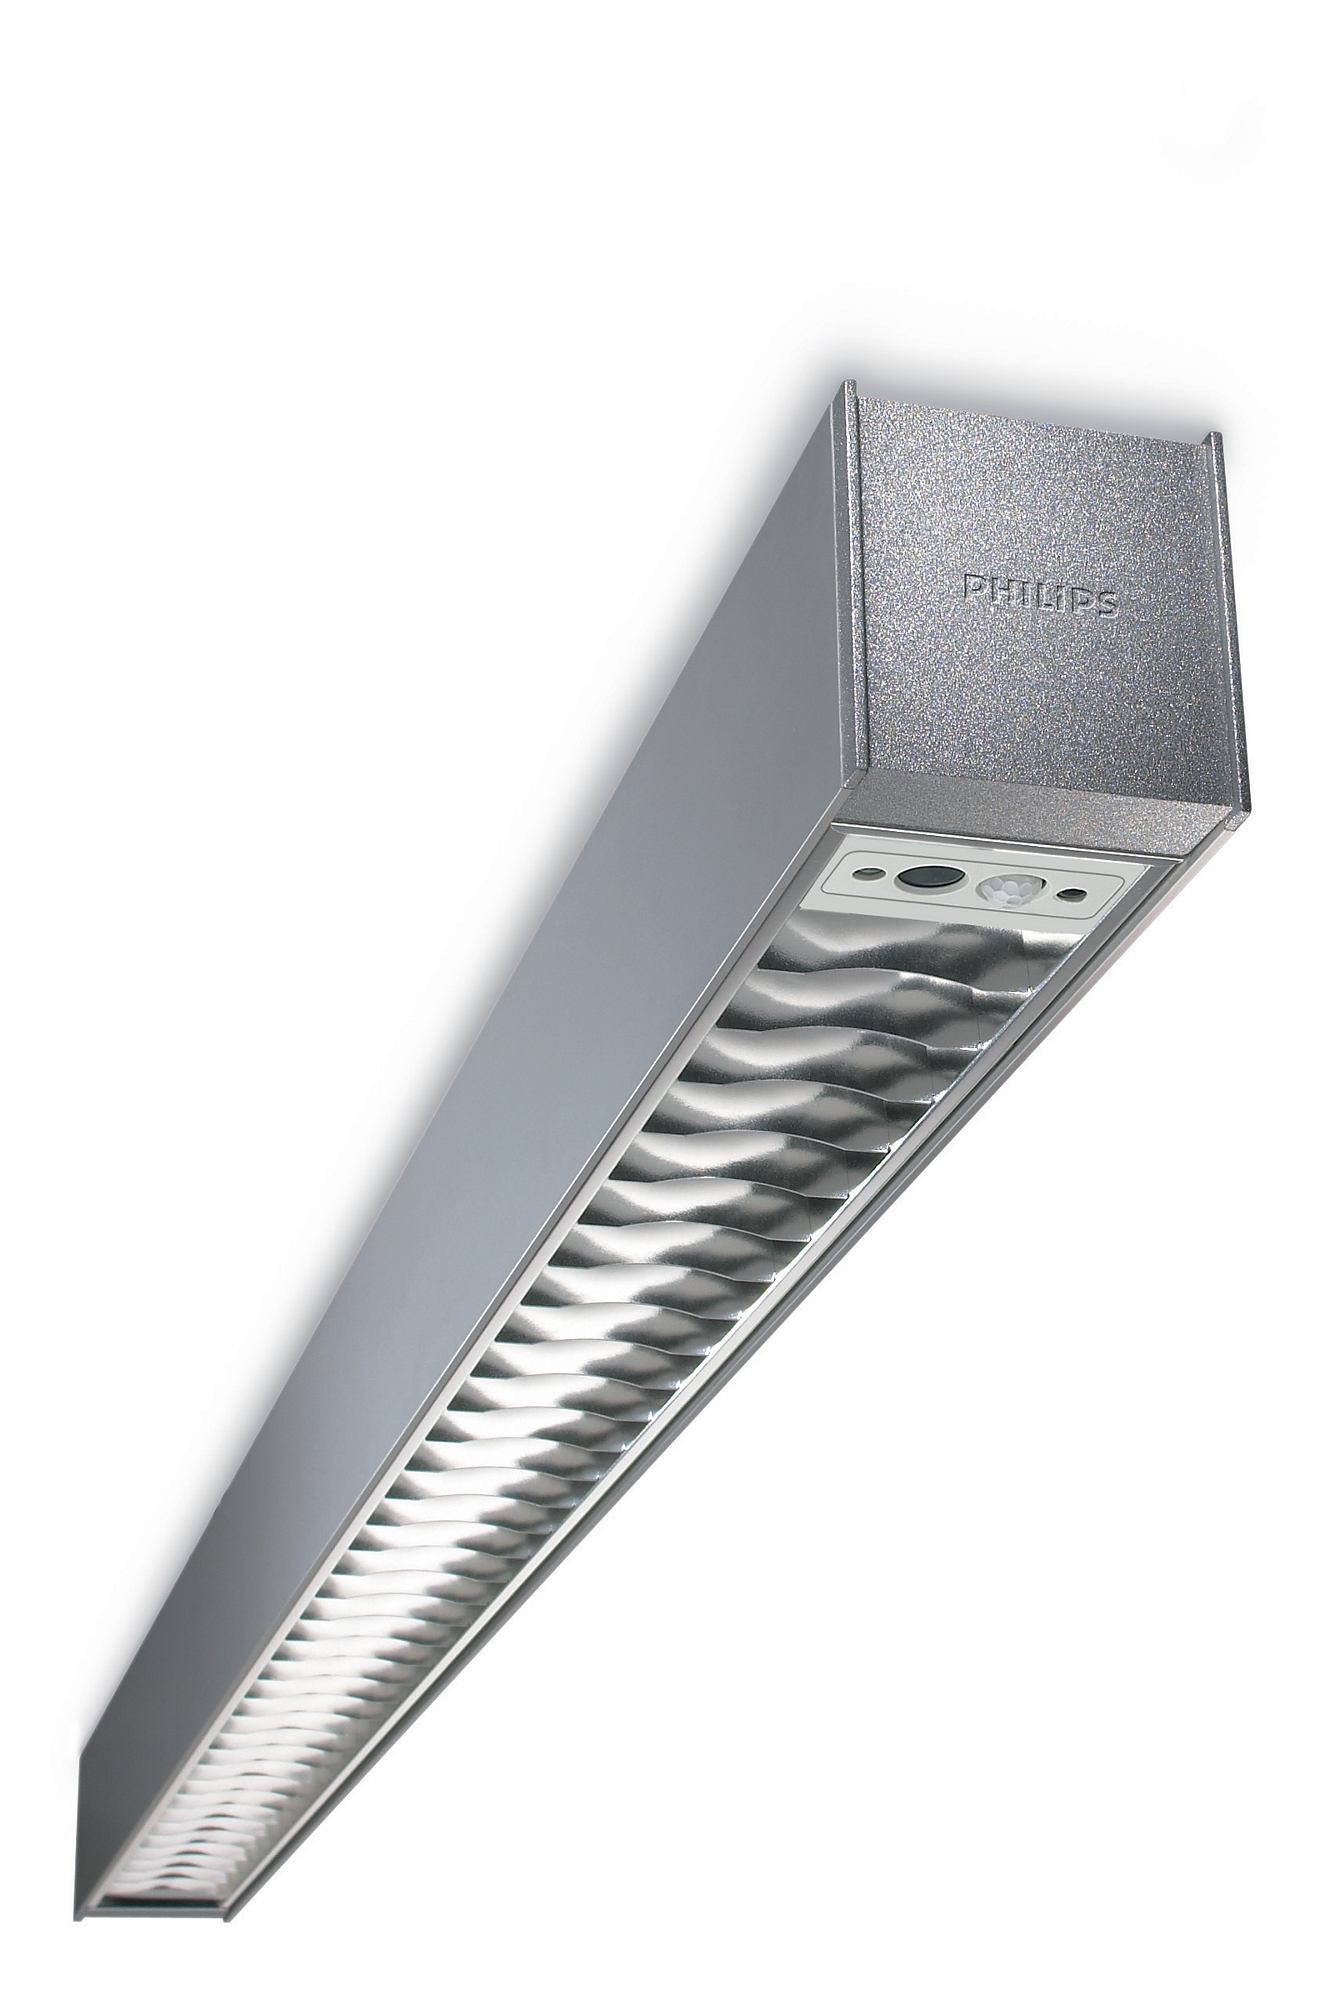 Celino BPS680 led24/840 psd w7l122 mlo pc sm2